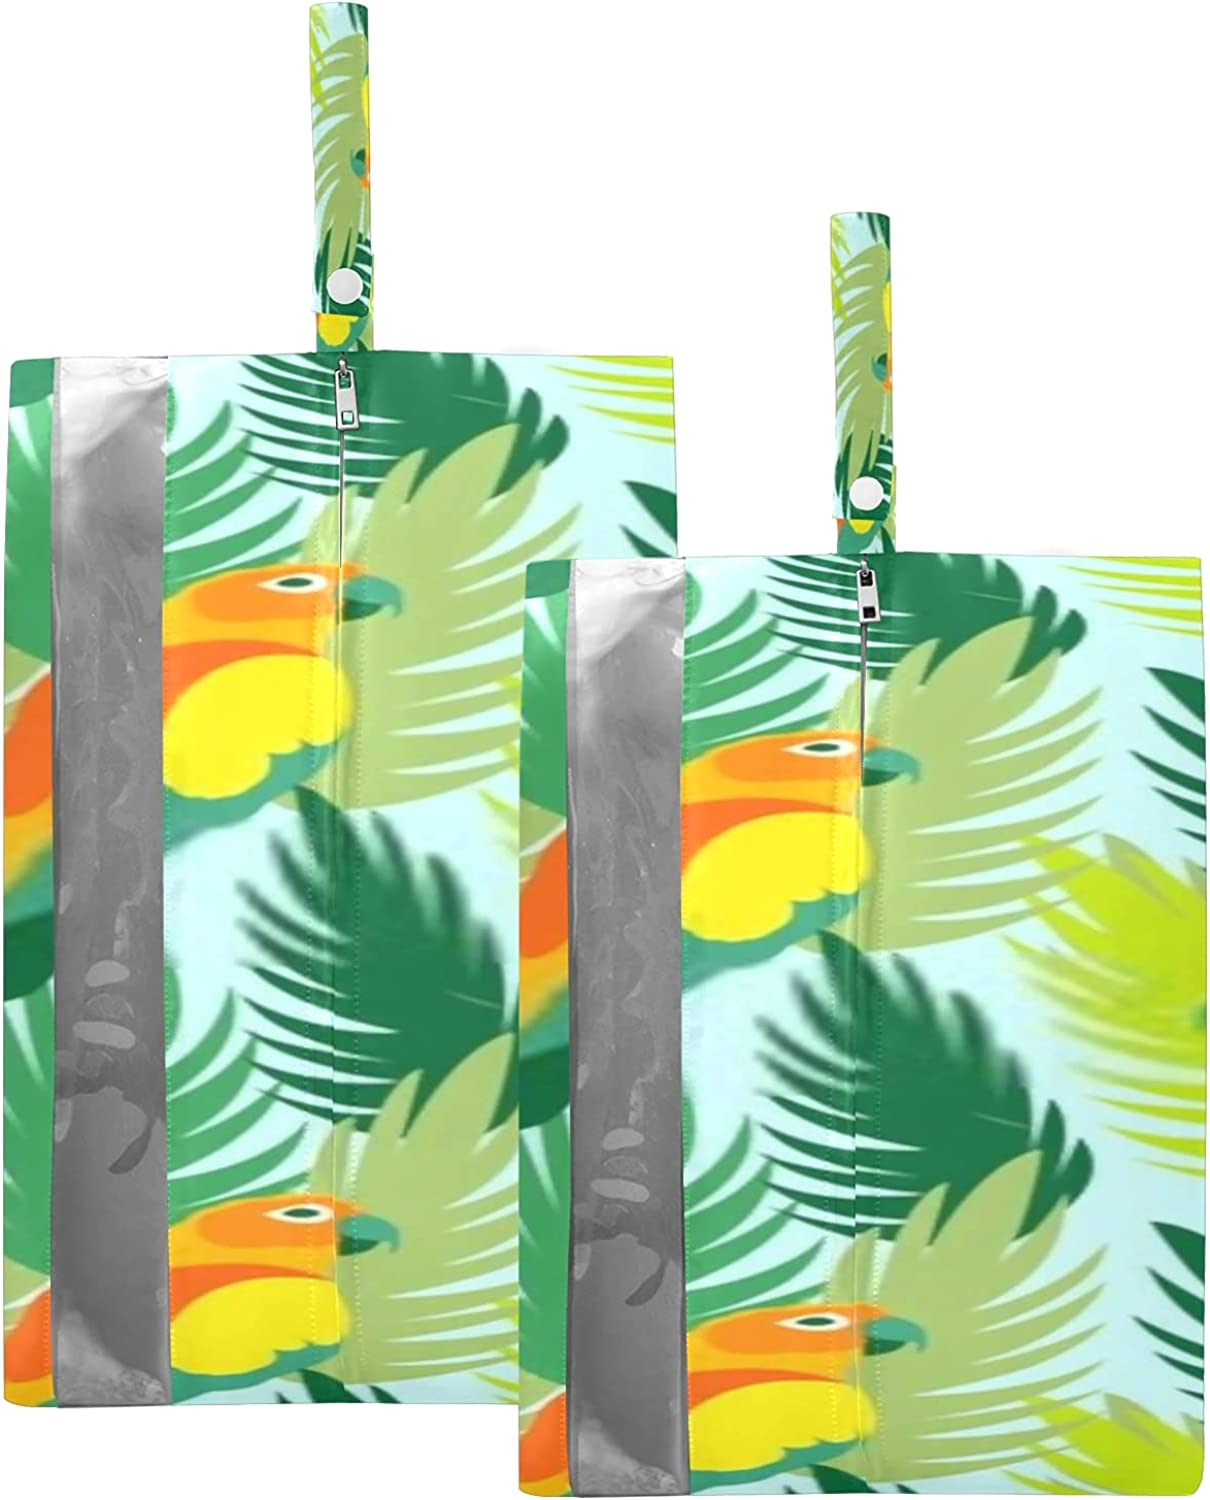 Waterproof New life Travel Shoe Bag Pack Jungle T Parrots Tropical Leaves List price